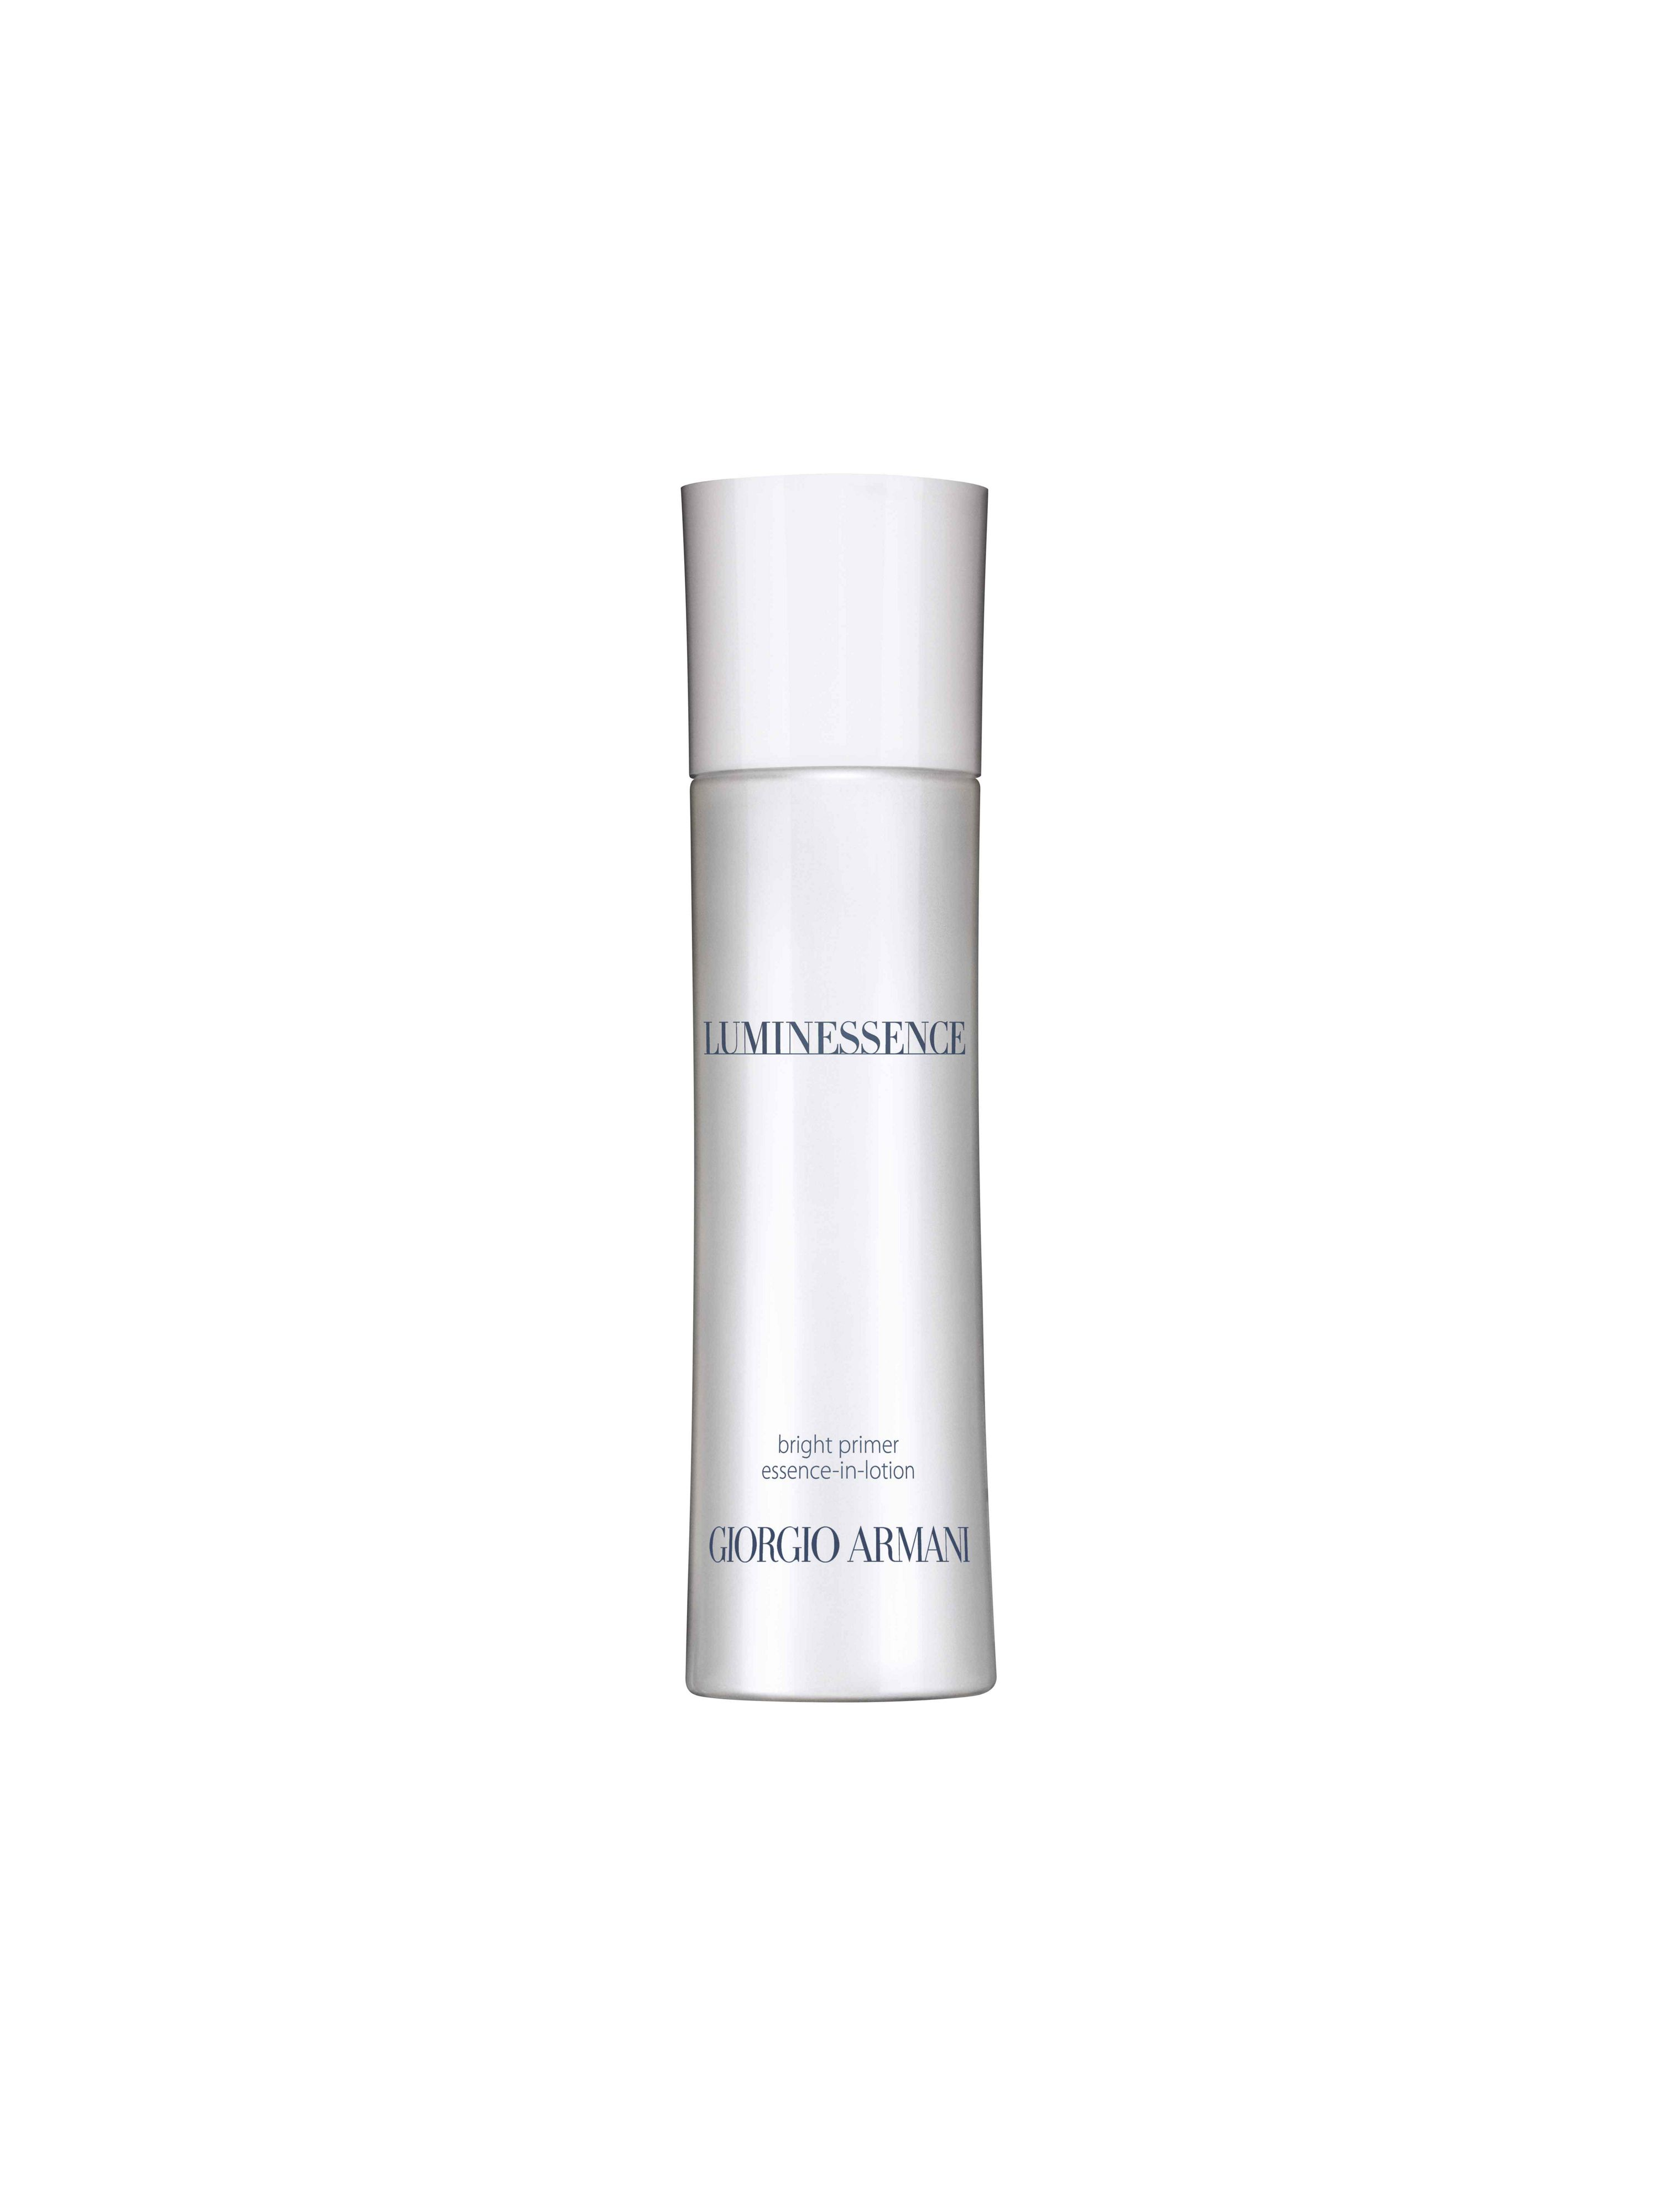 Luminessence Bright Primer Essence-in-Lotion